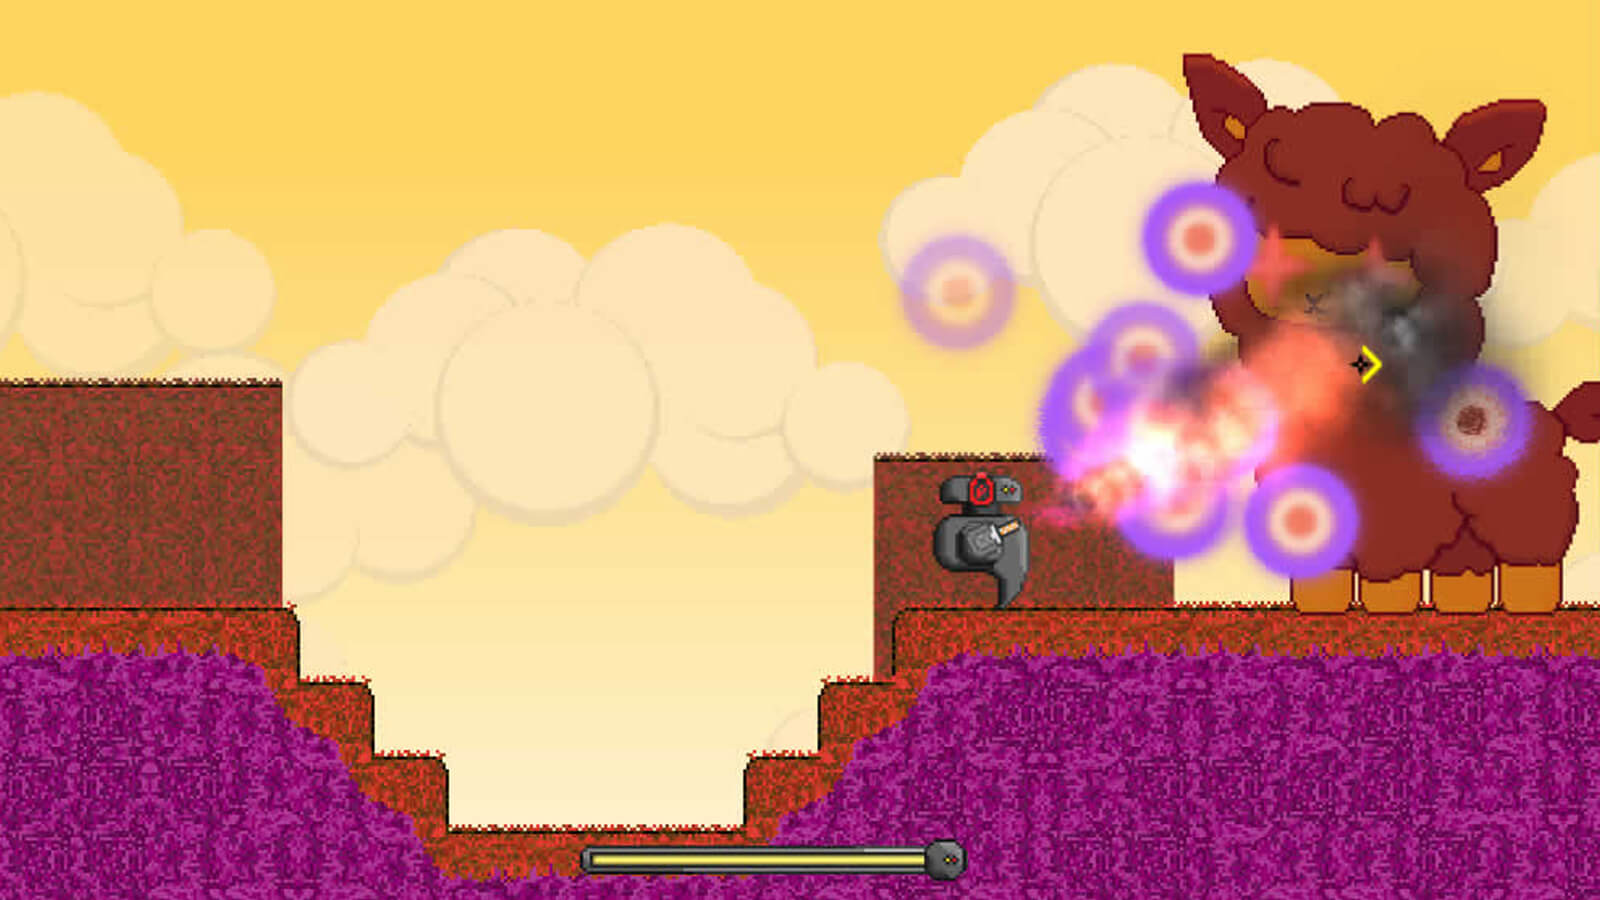 The player's robotic character shoots a flamethrower at a giant brown lamb blocking its path